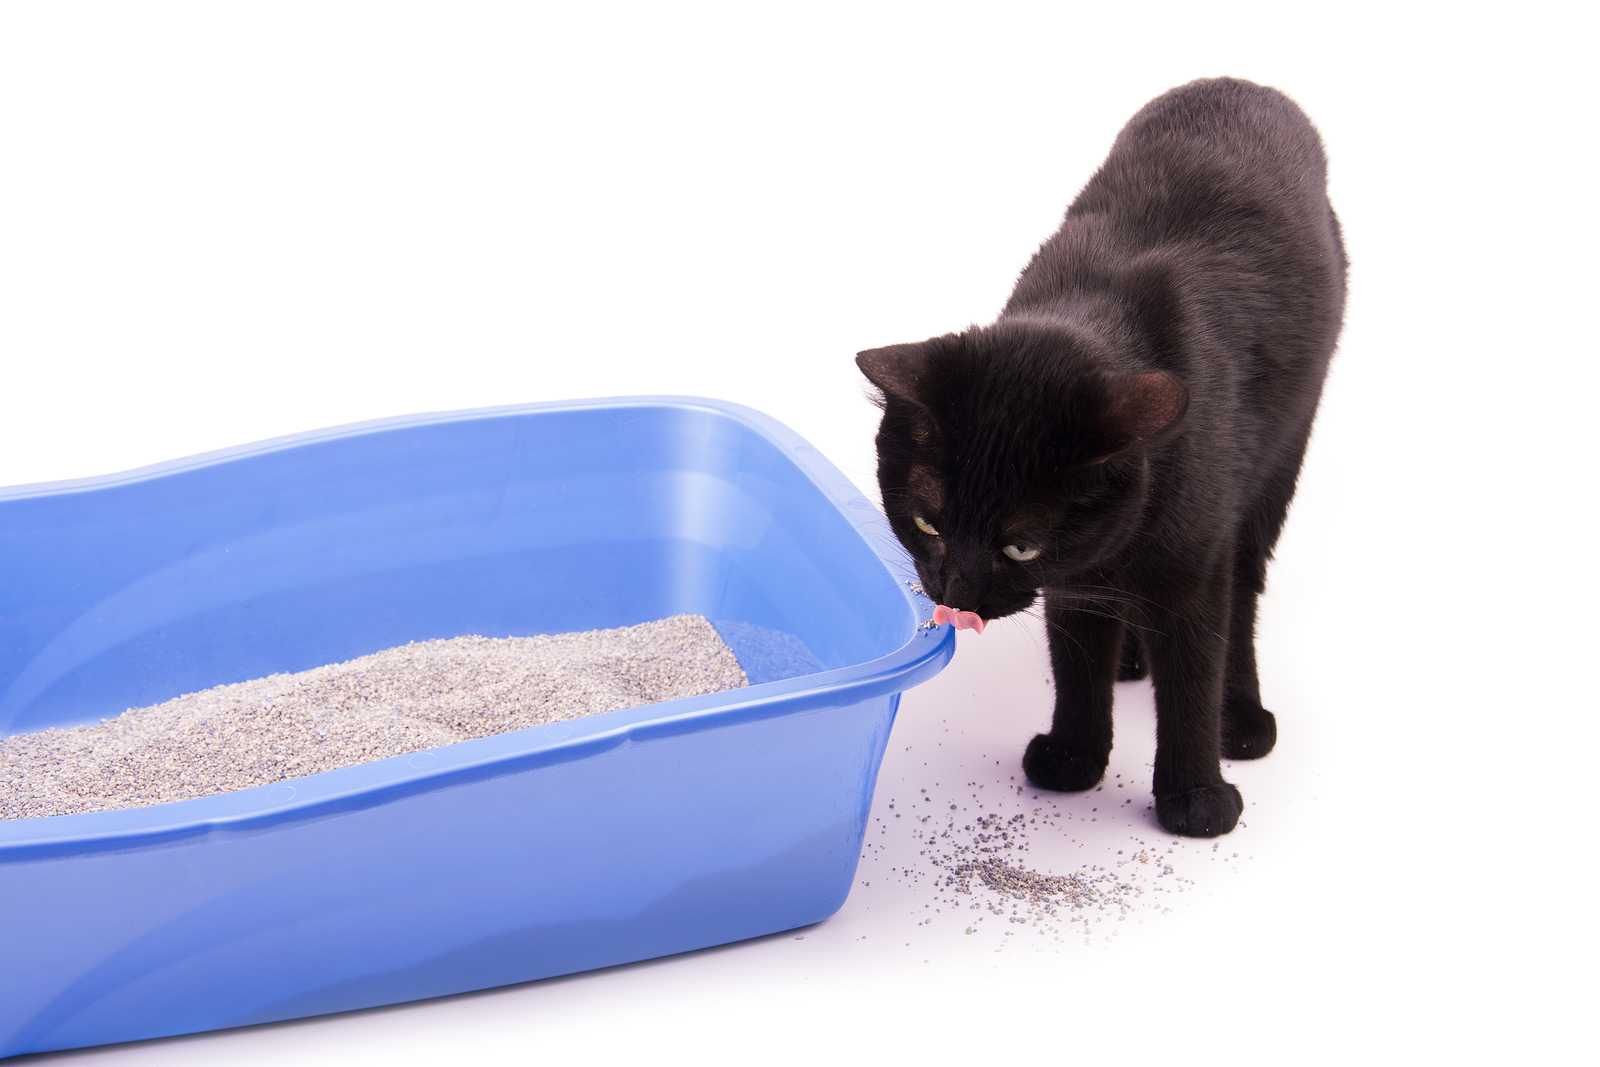 Cat Throws Poop Out Of Litter Box